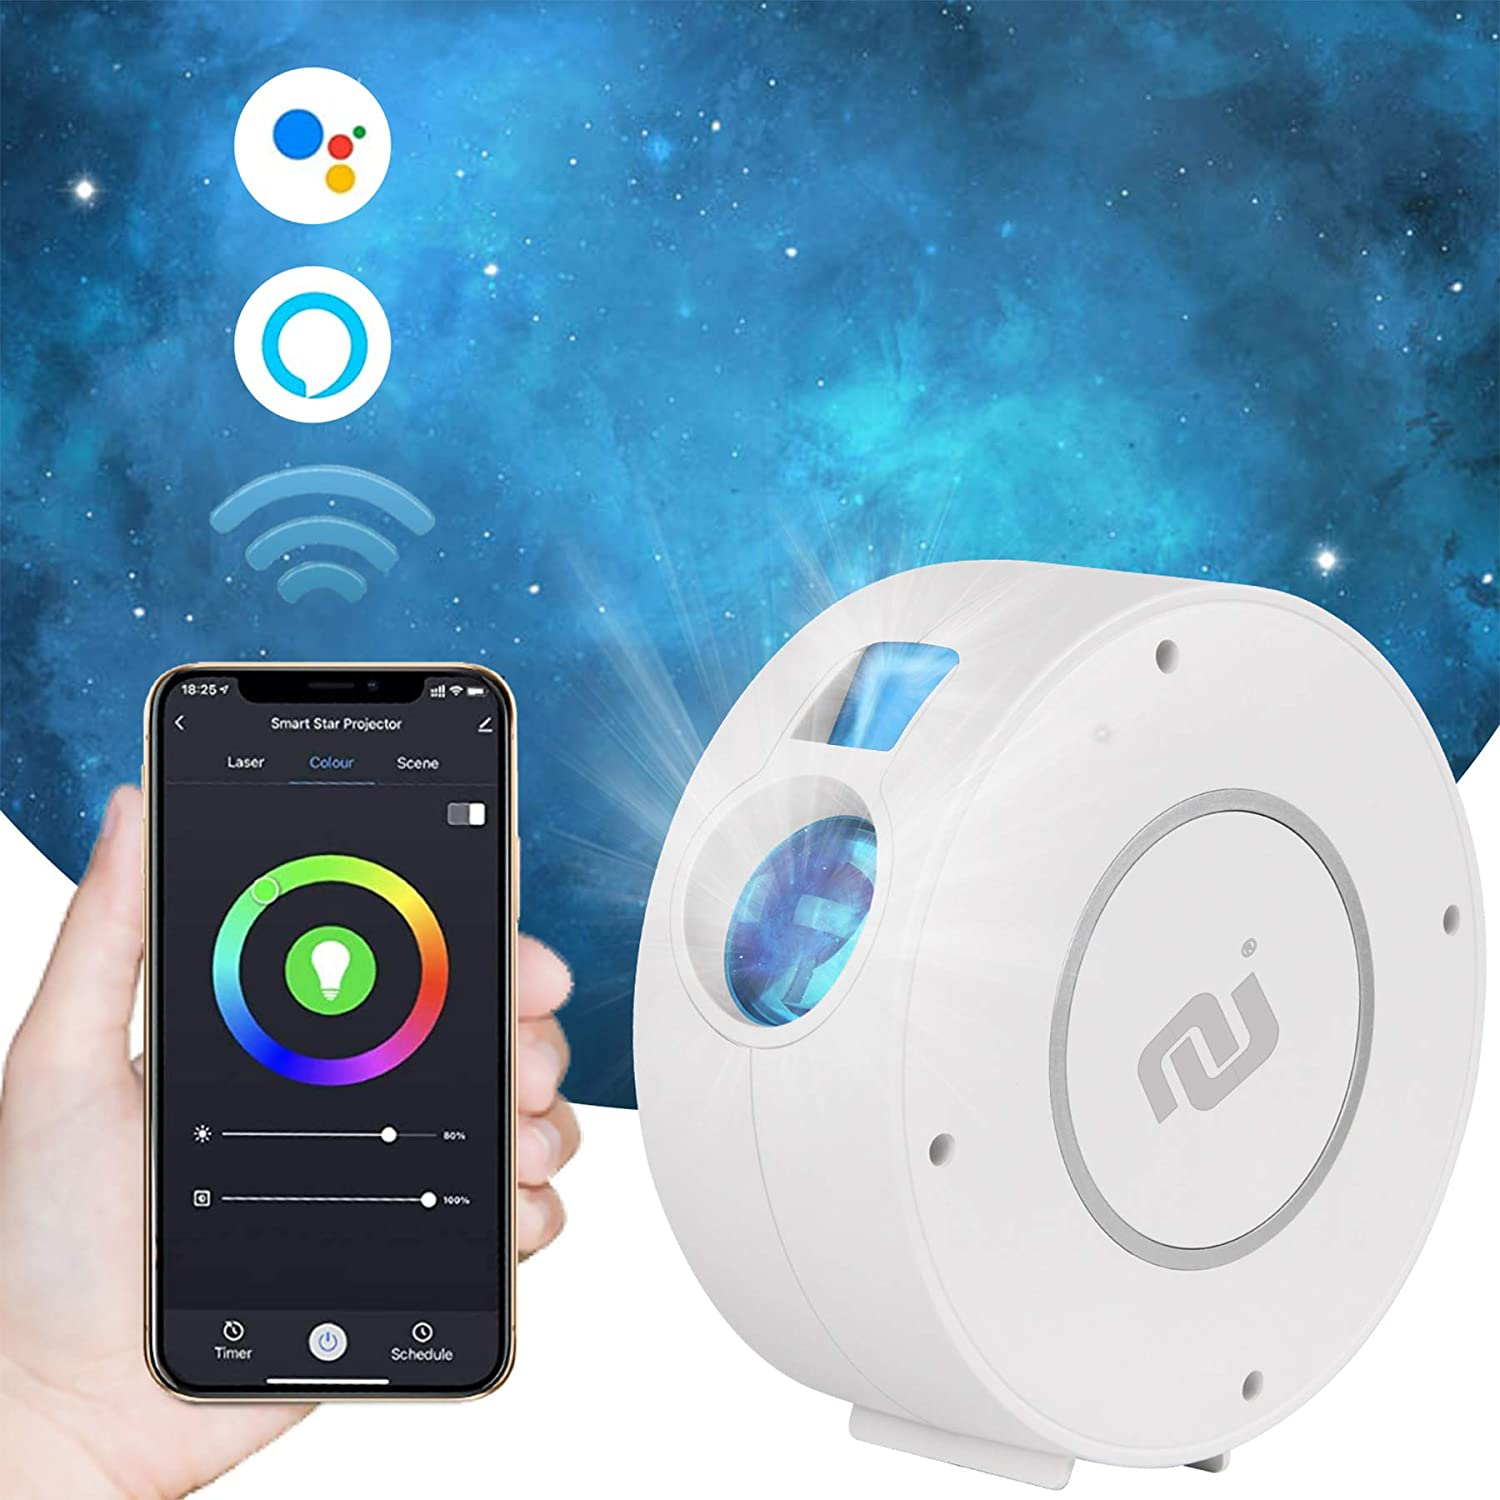 NUNET Galaxy Star Projector Sky LED Multi-Color Moving Nebula Cloud Night Light App & Voice Controlled Works w. Alexa & Google Home Quiet for Bedroom/ Theater / Game Room/ Camping (2021 Blue Stars)